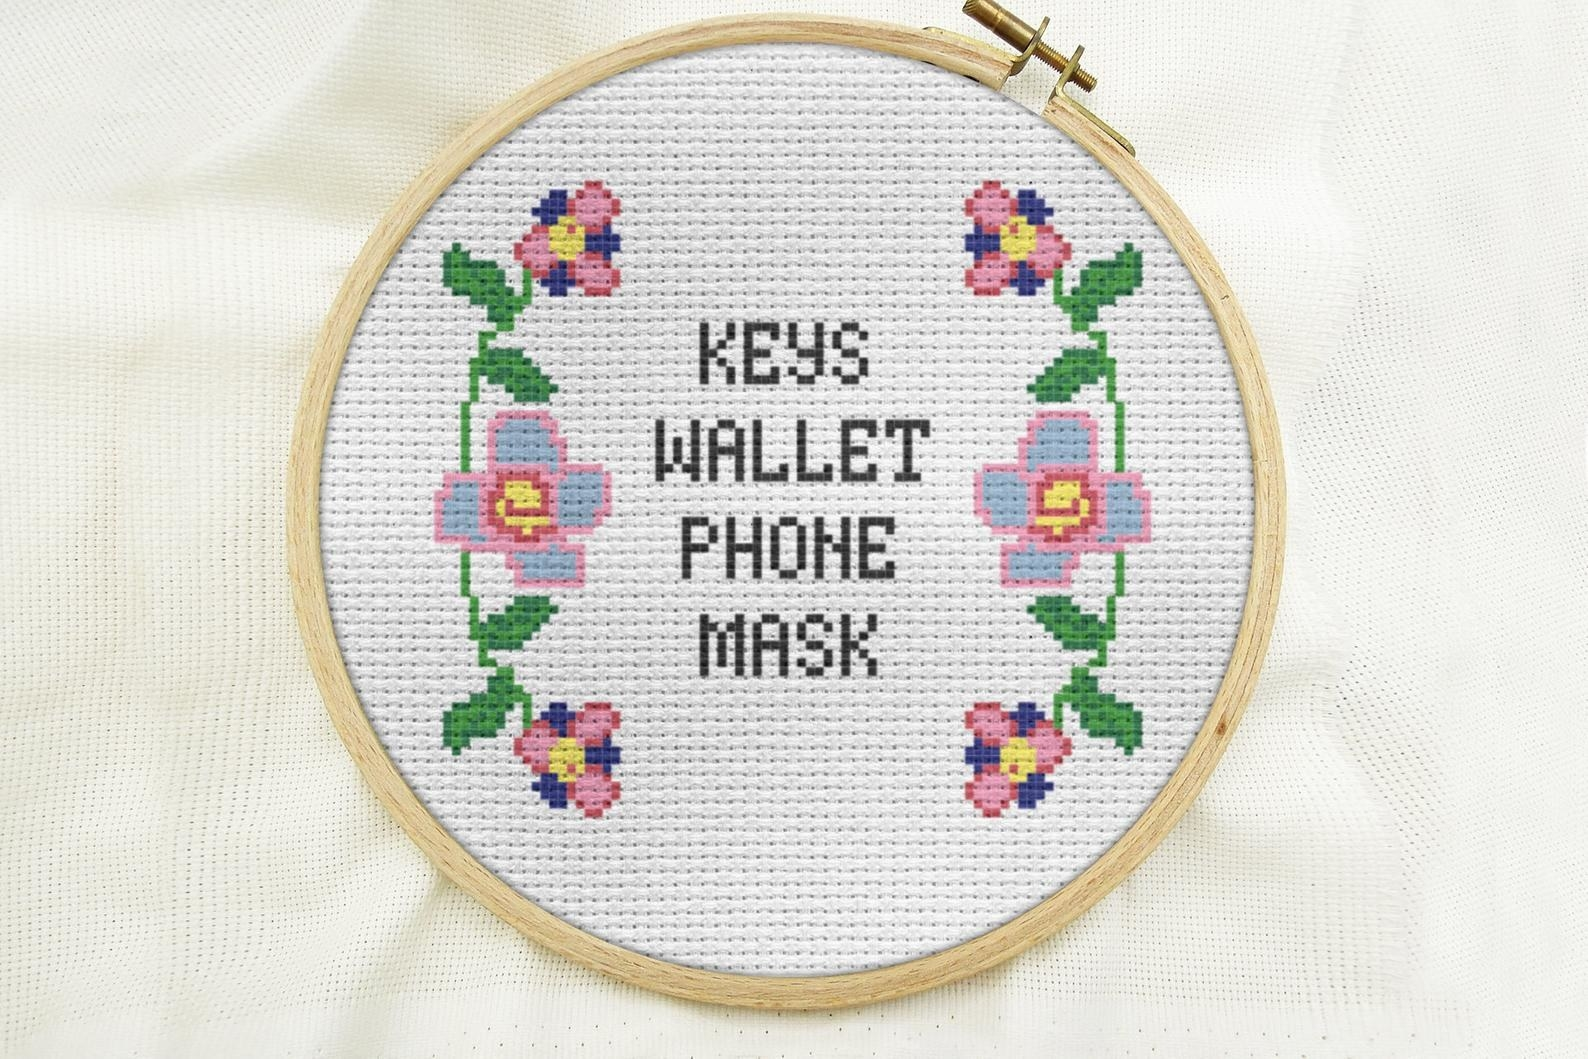 a cross stitch that says keys wallet phone mask surrounded by florals